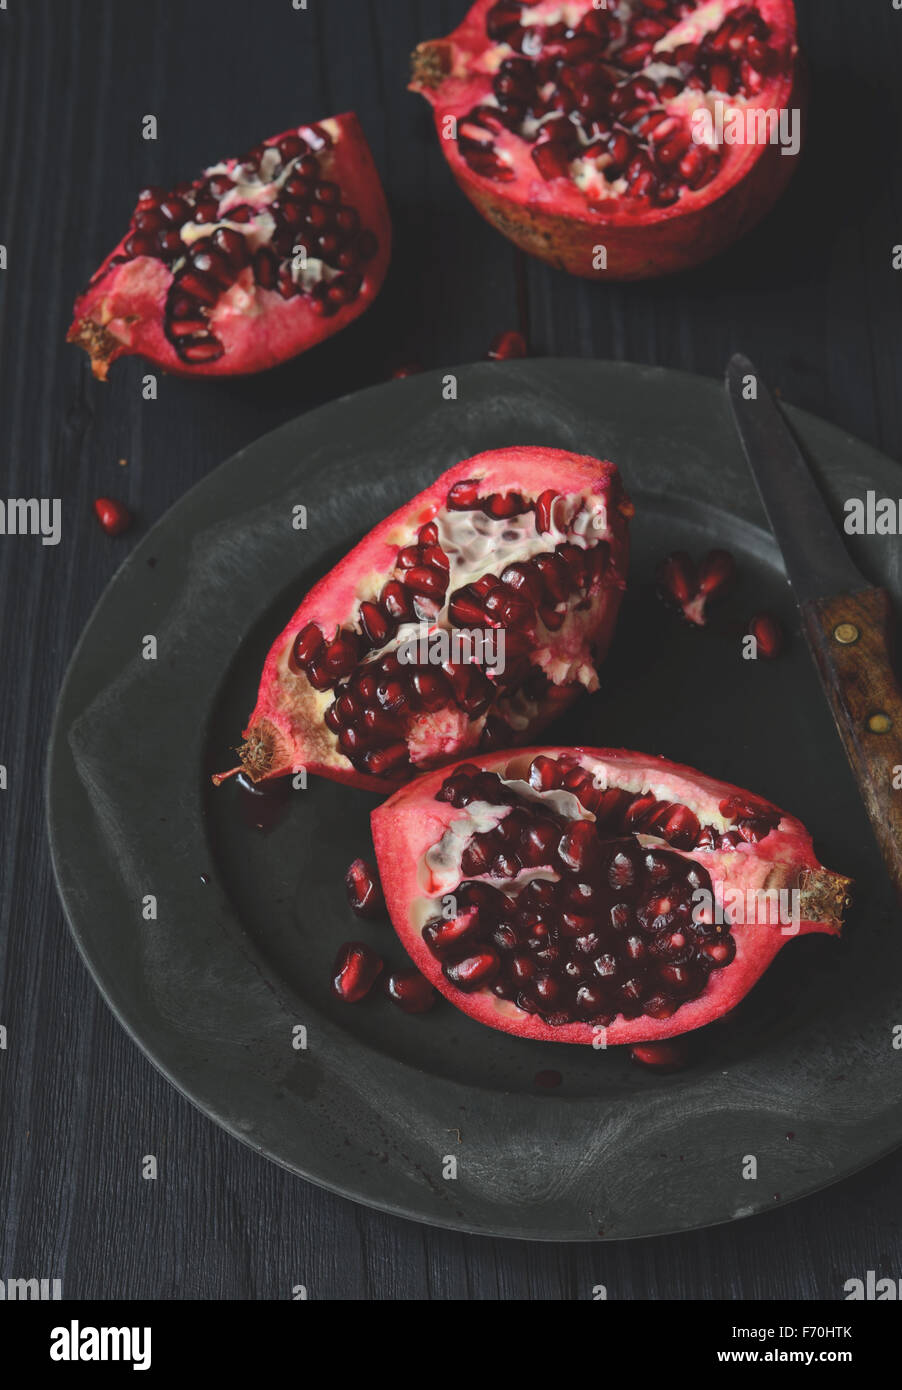 Pieces and grains of ripe pomegranate fruit - Stock Image